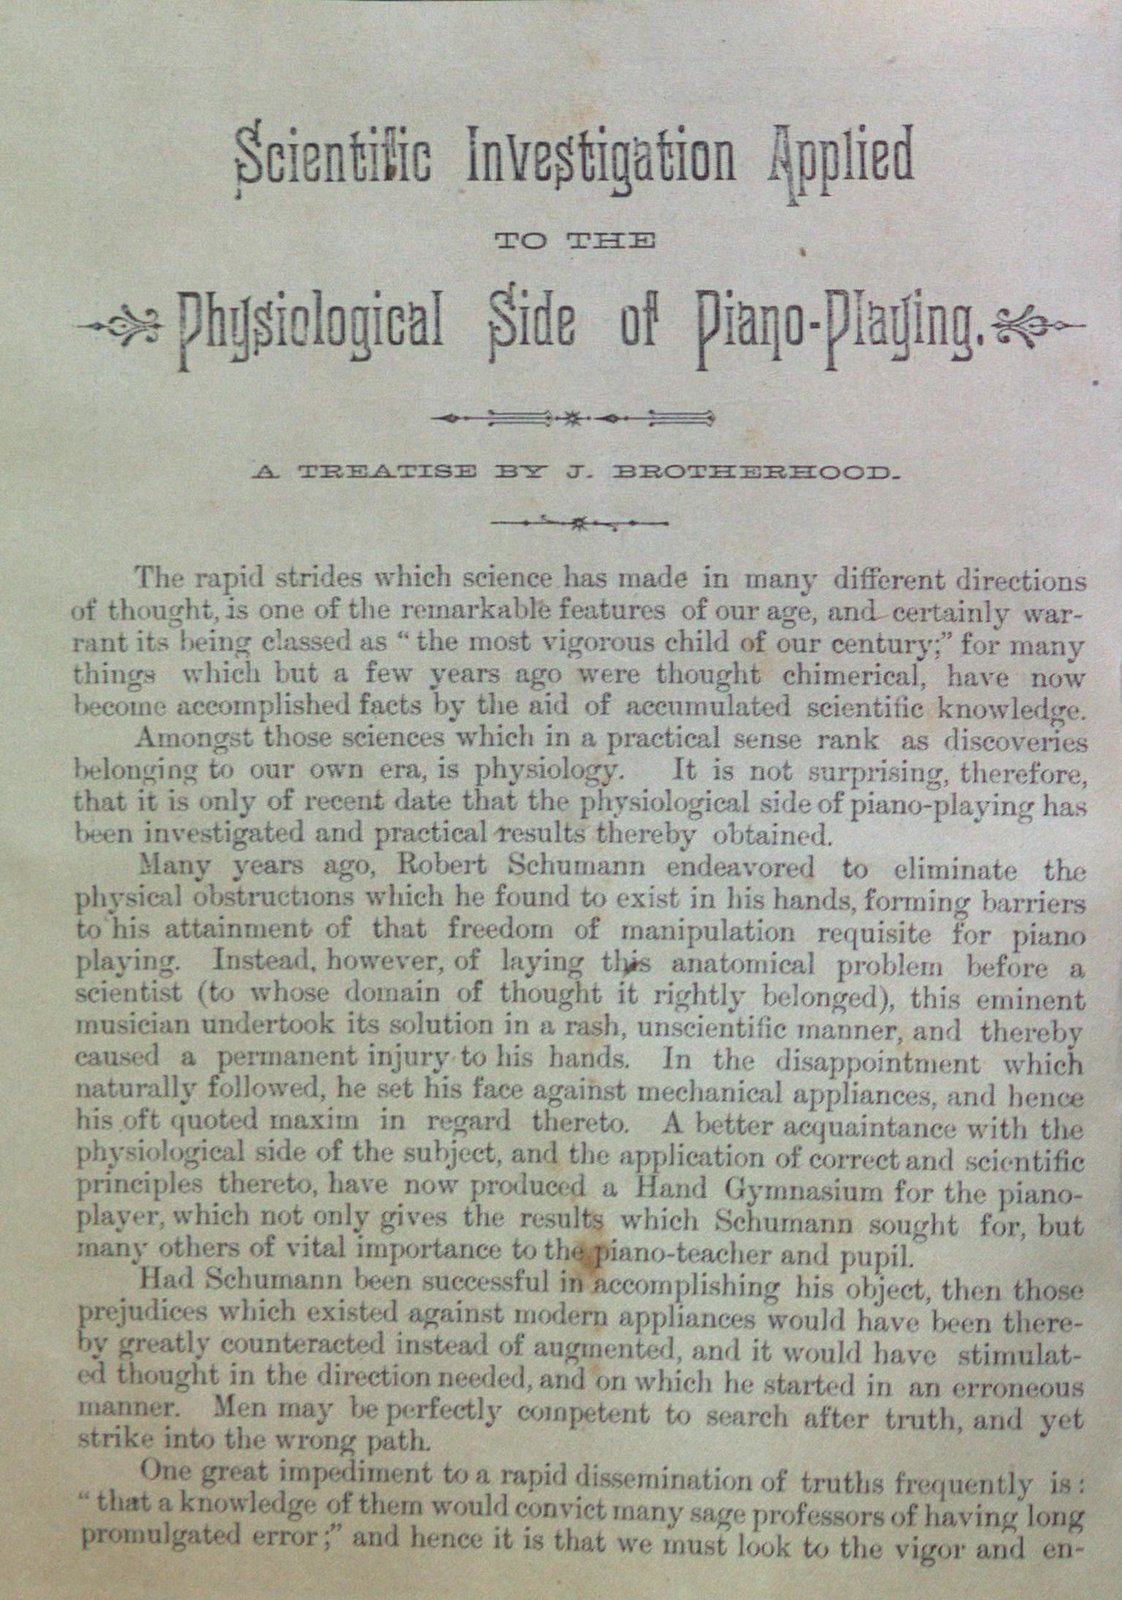 Teresa Vanderburgh's Musical Scrapbook #1 - Pamphlet: Anatomical Details Involved in Piano-Playing